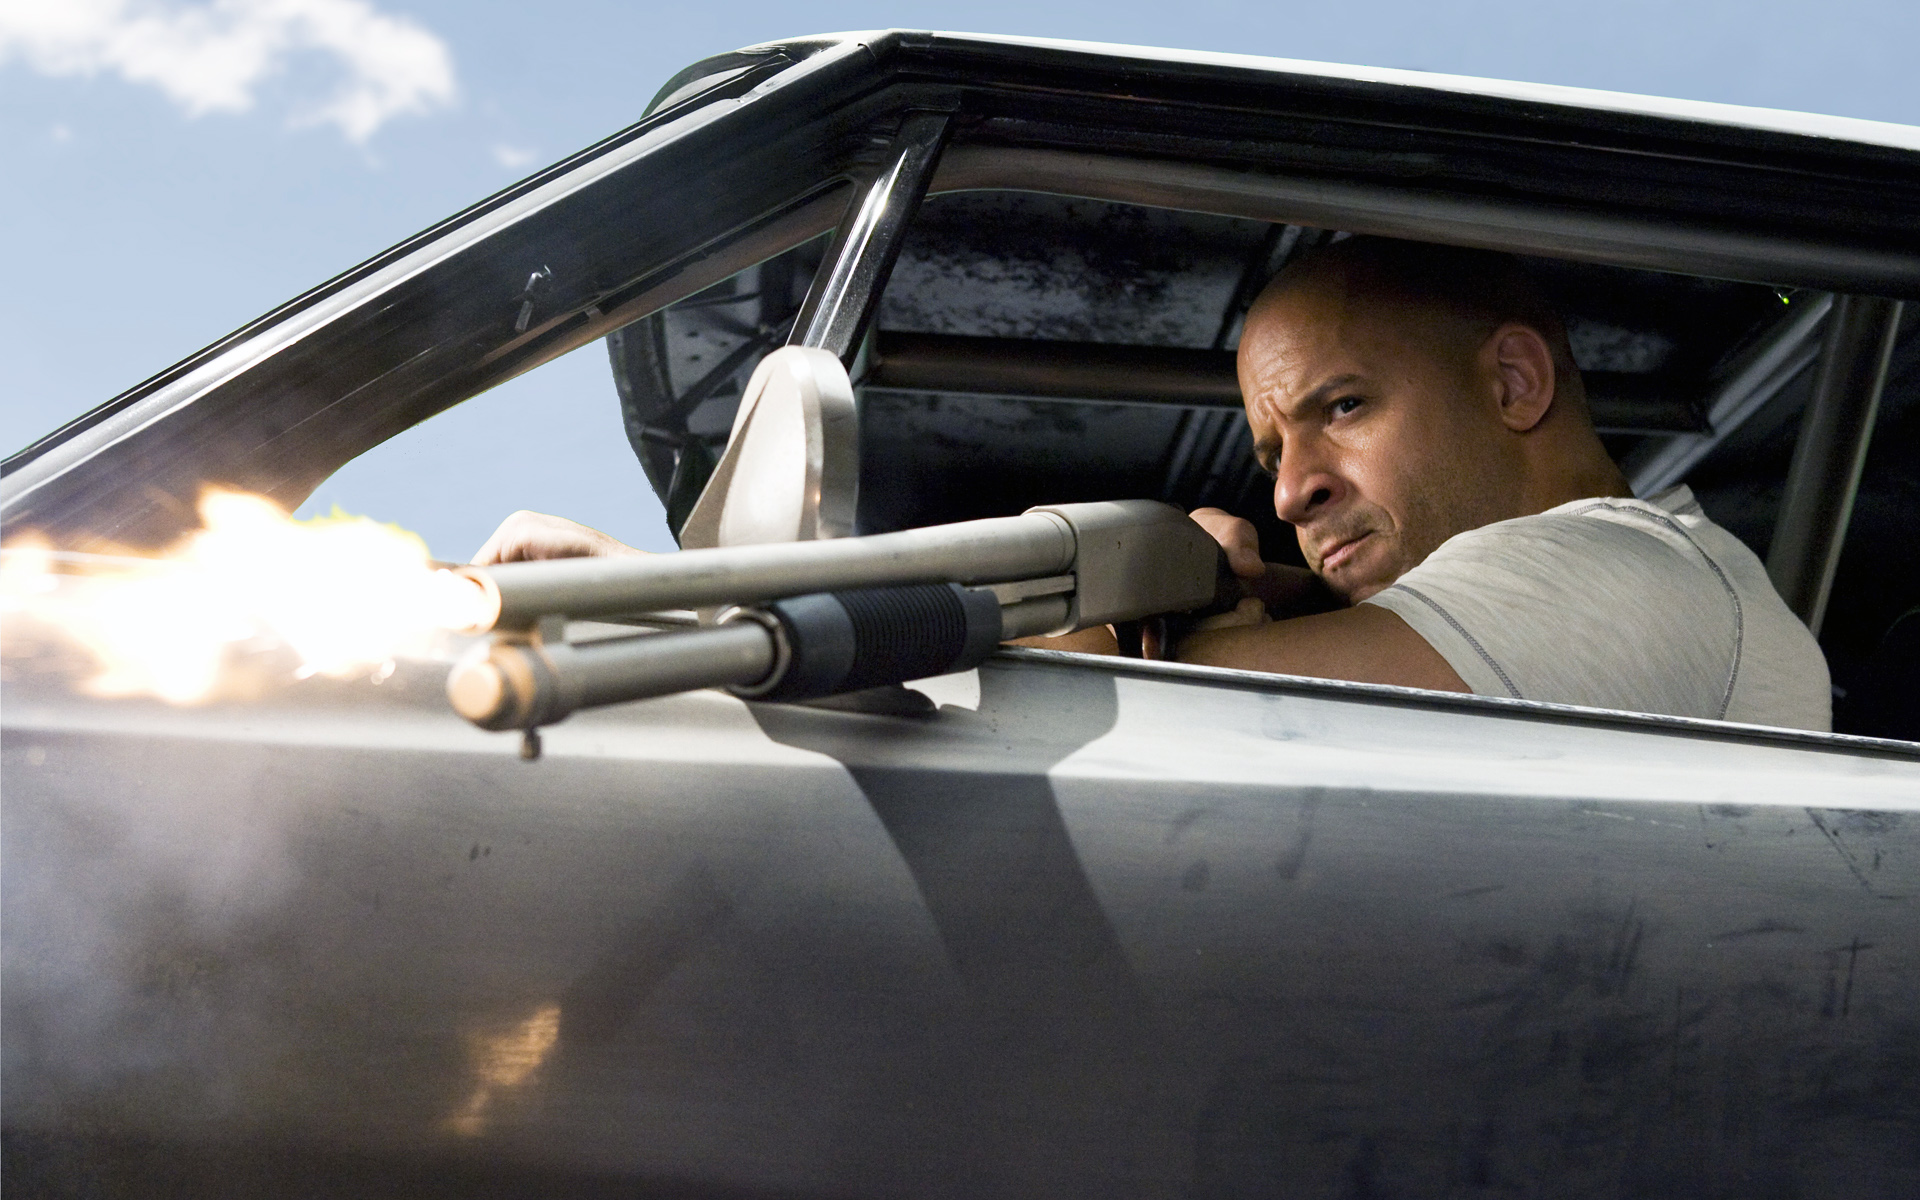 Vin Diesel Fast And Furious Wallpaper - WallpaperSafari